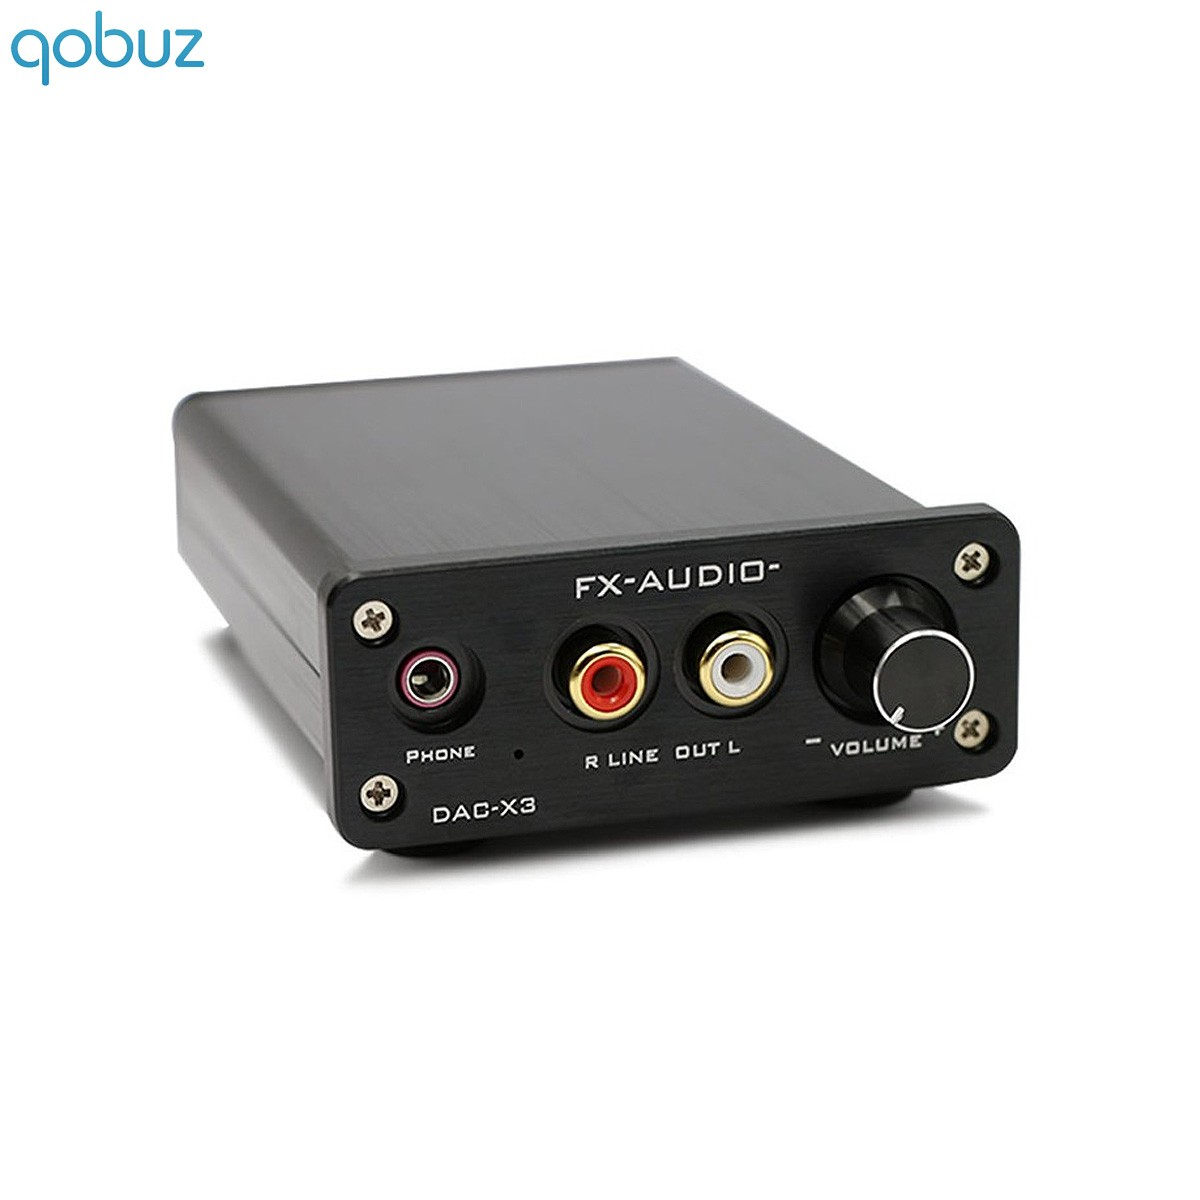 FX-AUDIO DAC-X3 DAC / Amplificateur casque CS4344 24bit / 192kHz Noir